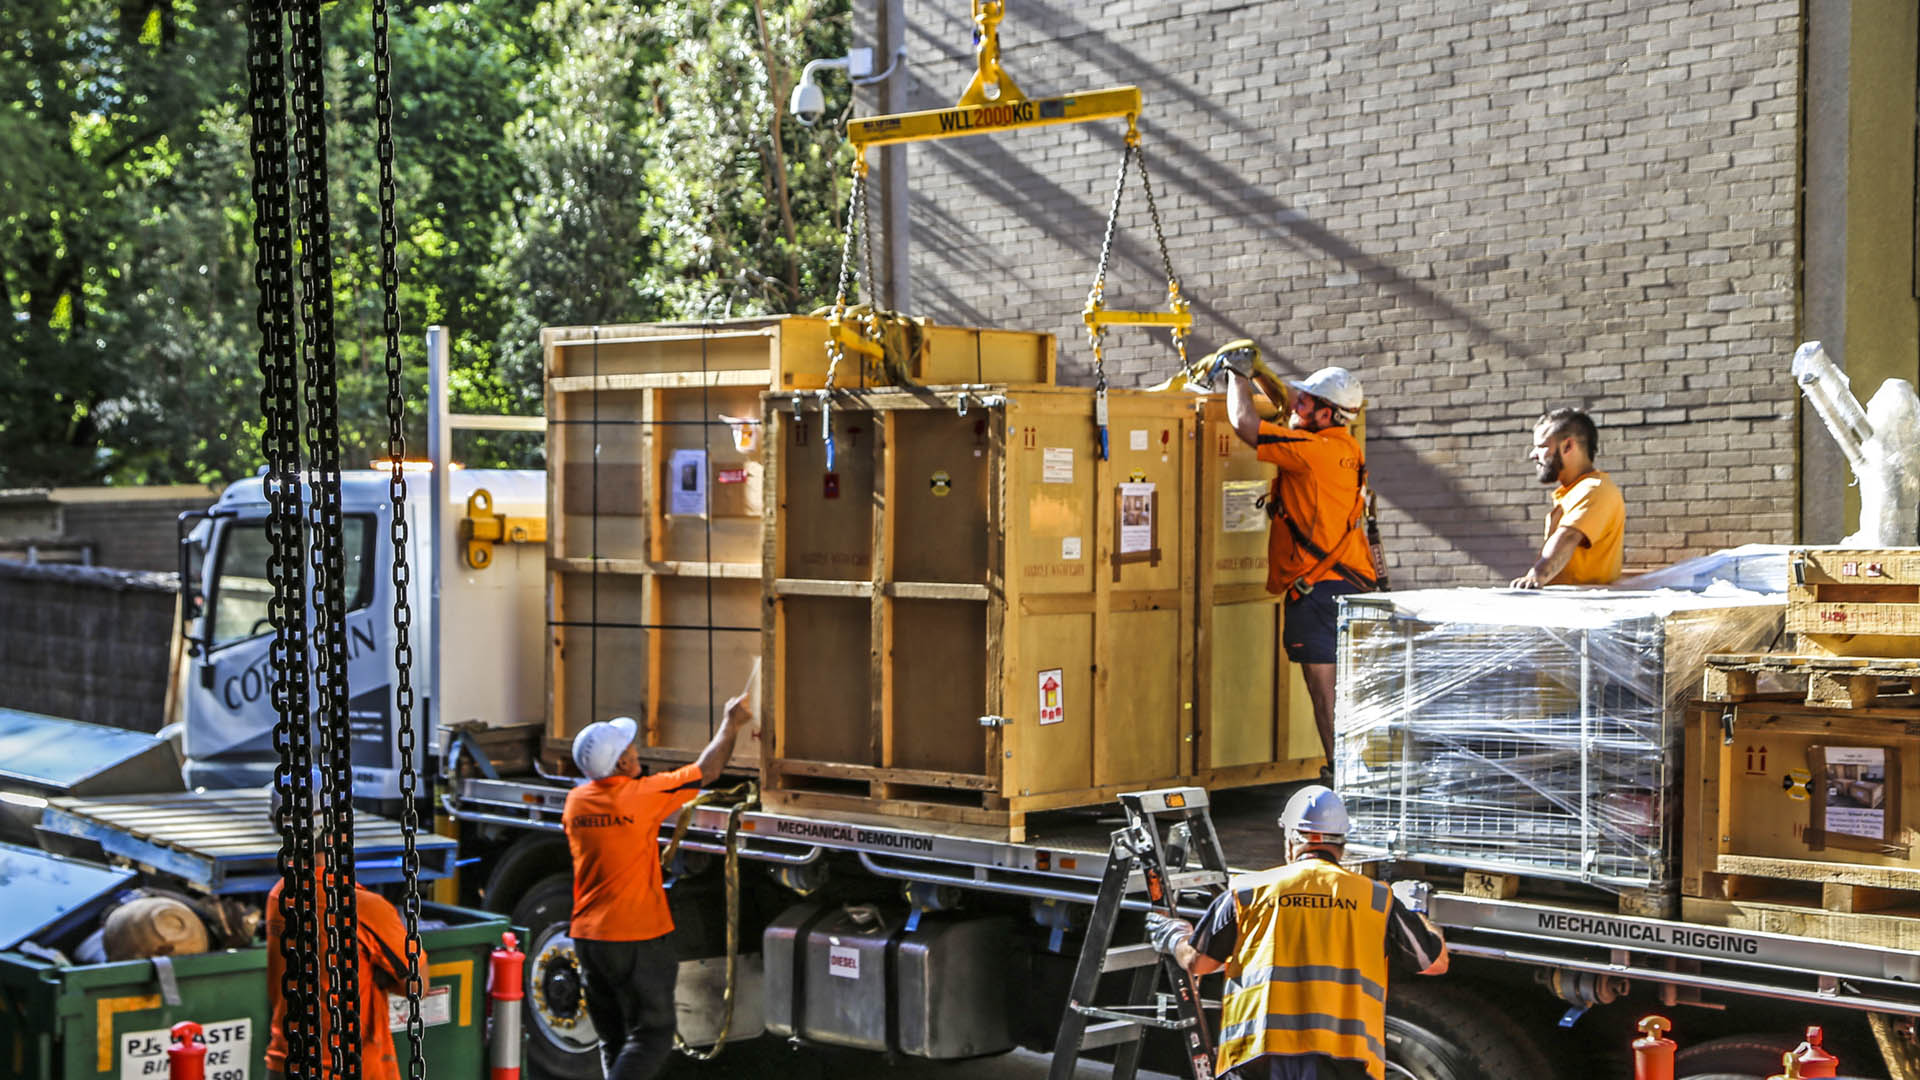 People helping affix a large box to a crane